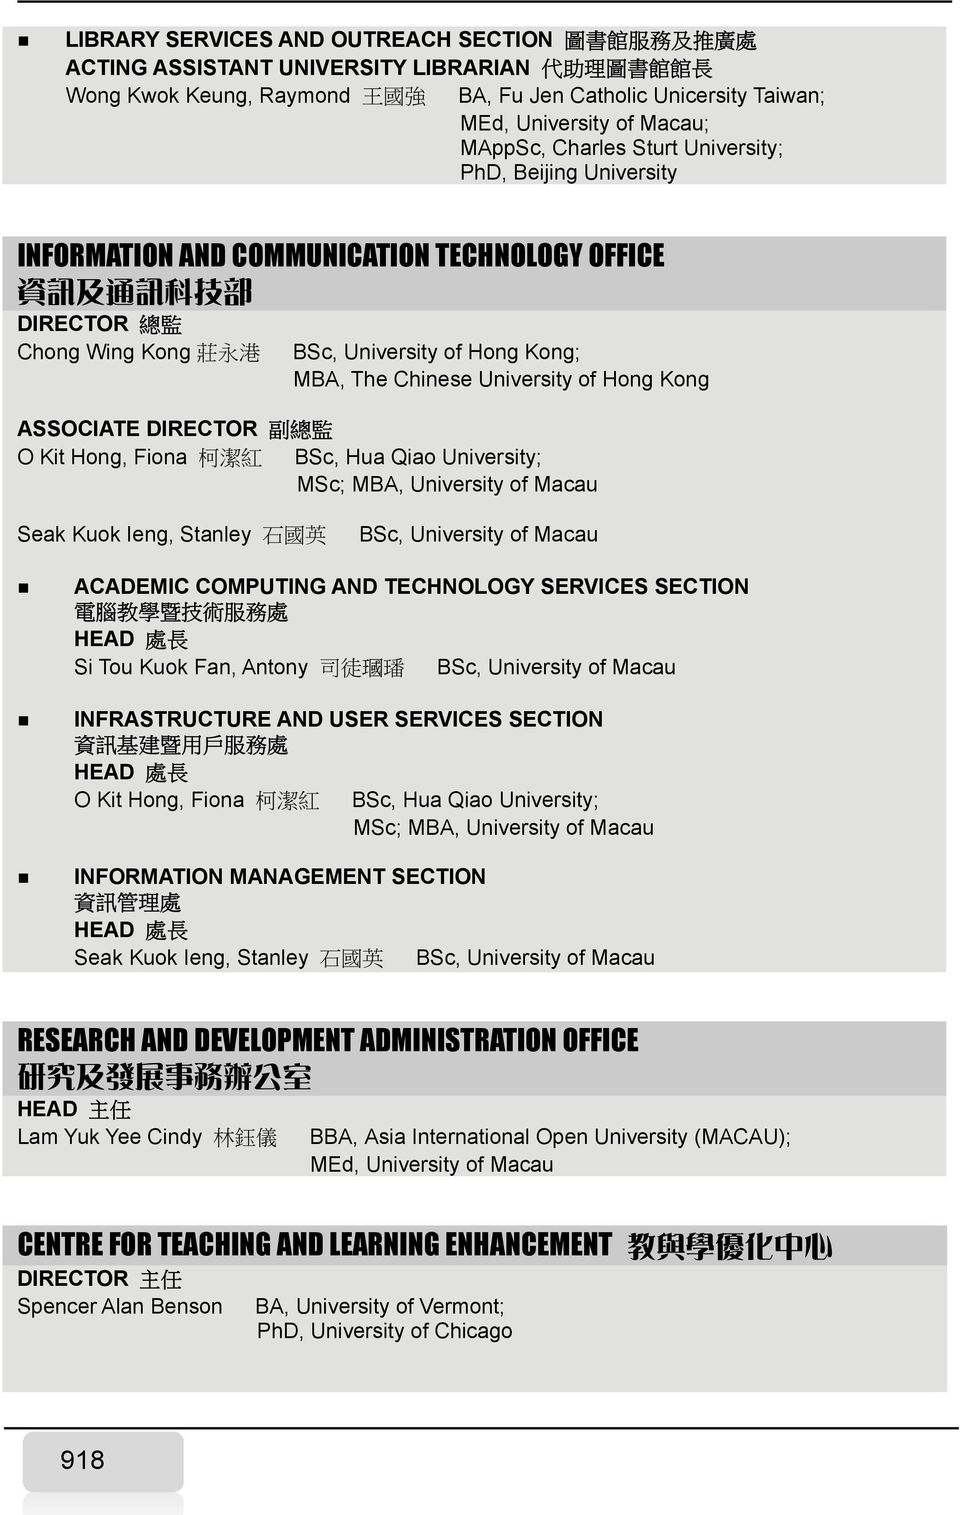 石 國 英 BSc, University of Macau ACADEMIC COMPUTING AND TECHNOLOGY SERVICES SECTION 電 腦 教 學 暨 技 術 服 務 處 Si Tou Kuok Fan, Antony 司 徒 璠 BSc, University of Macau INFRASTRUCTURE AND USER SERVICES SECTION 資